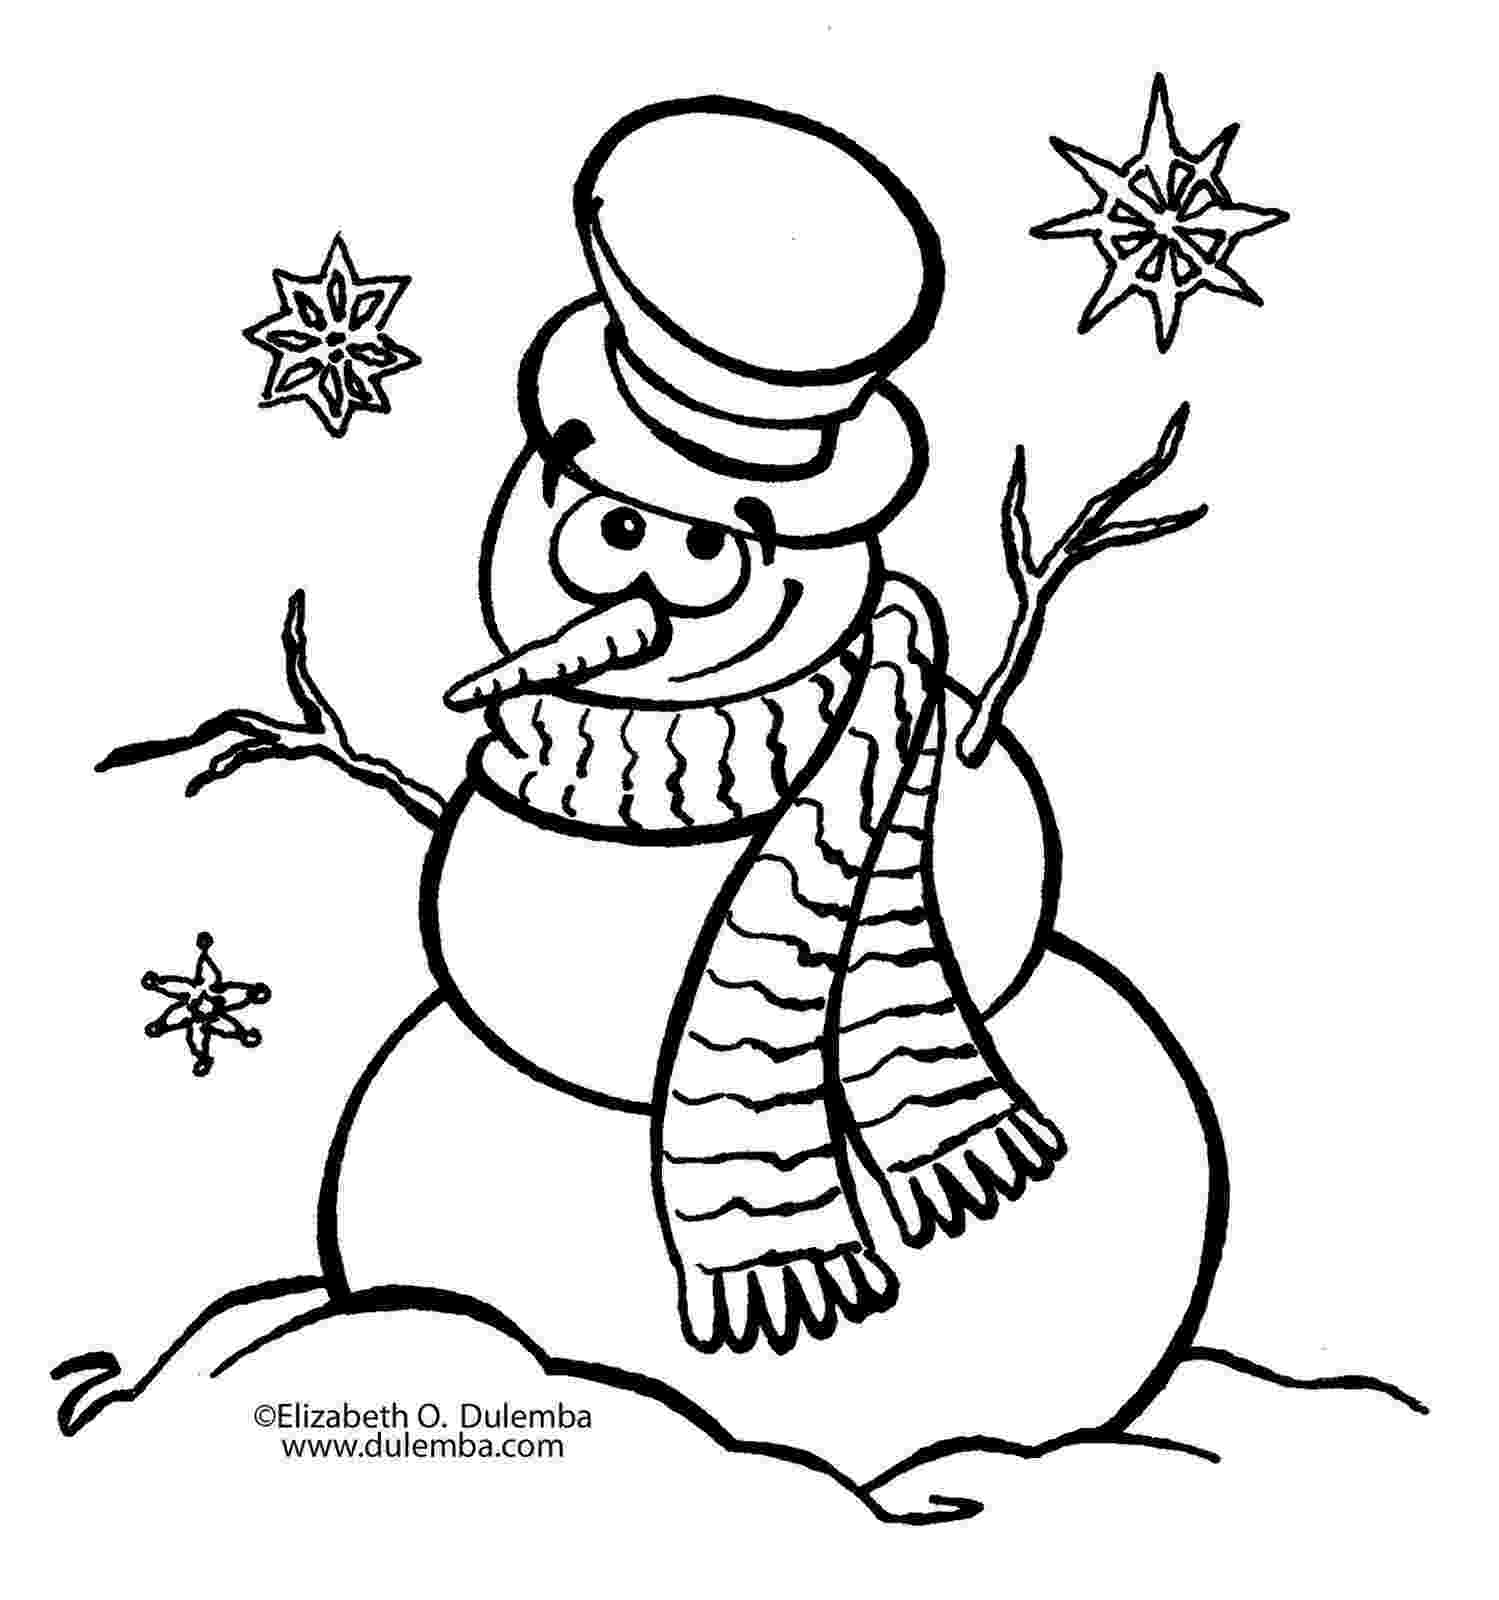 snowman color page snowman coloring pages to download and print for free page snowman color